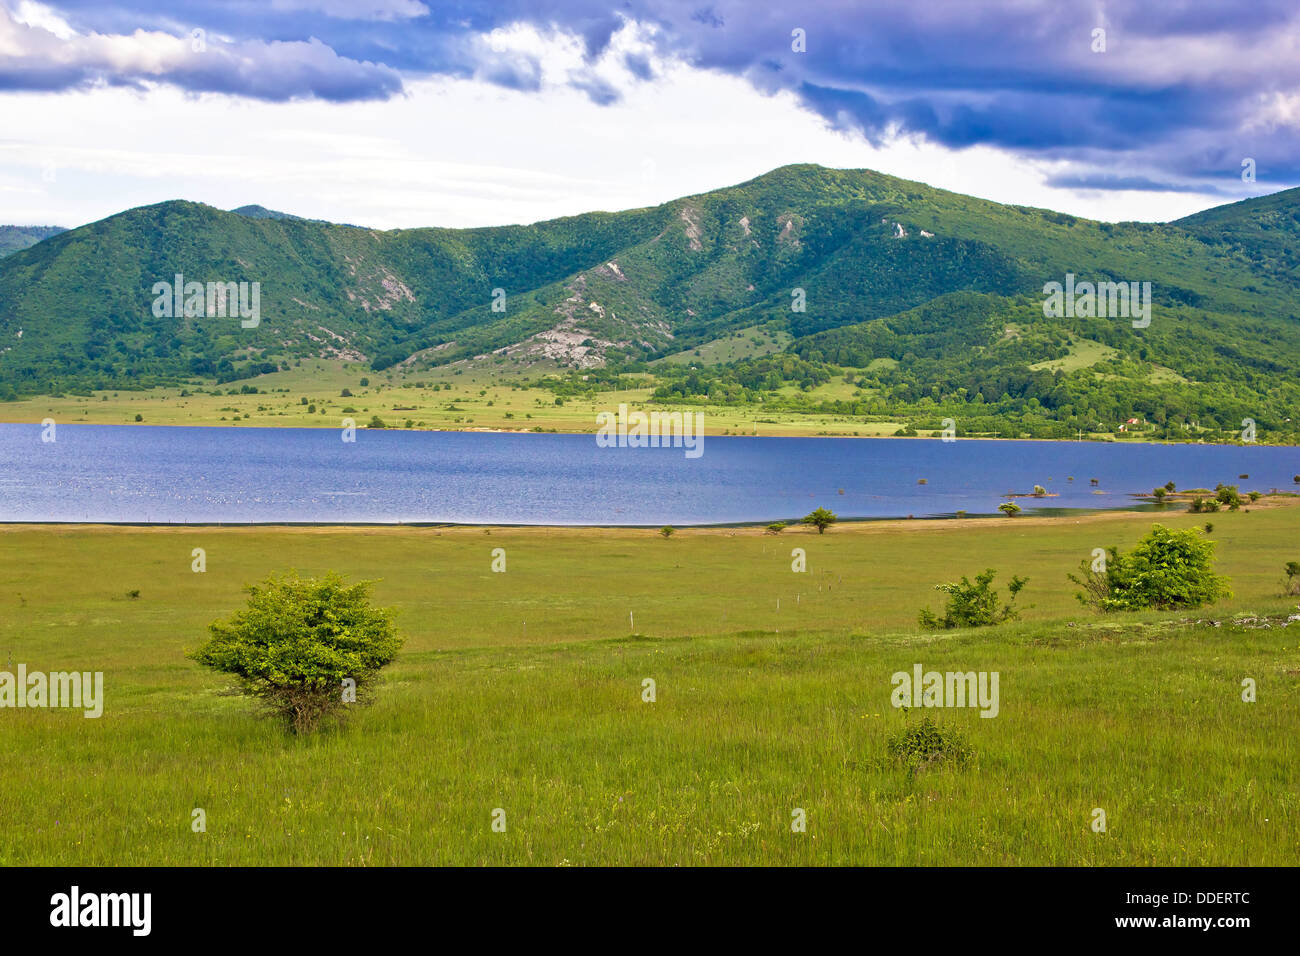 Lika region mountain and lake landscape, Croatia - Stock Image